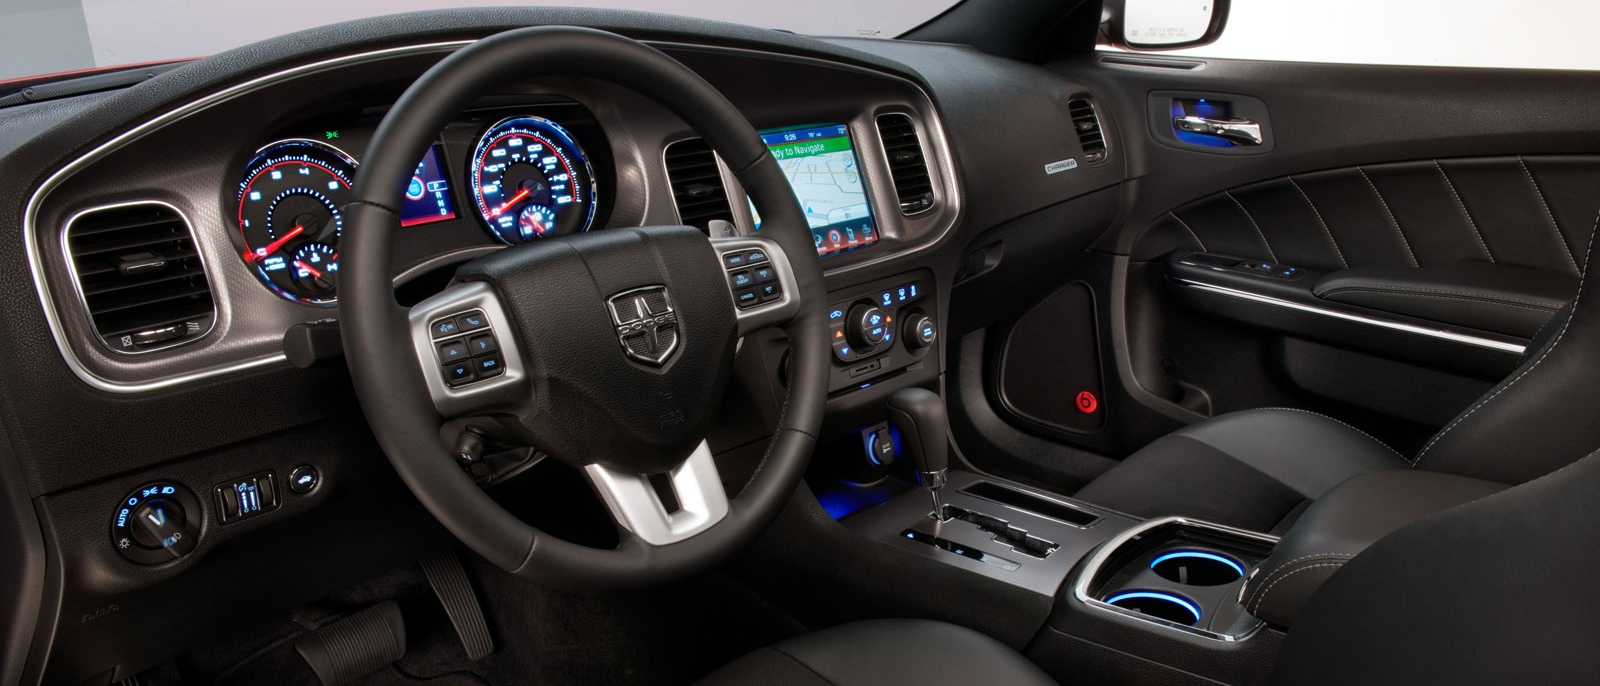 2014 Dodge Charger Interior